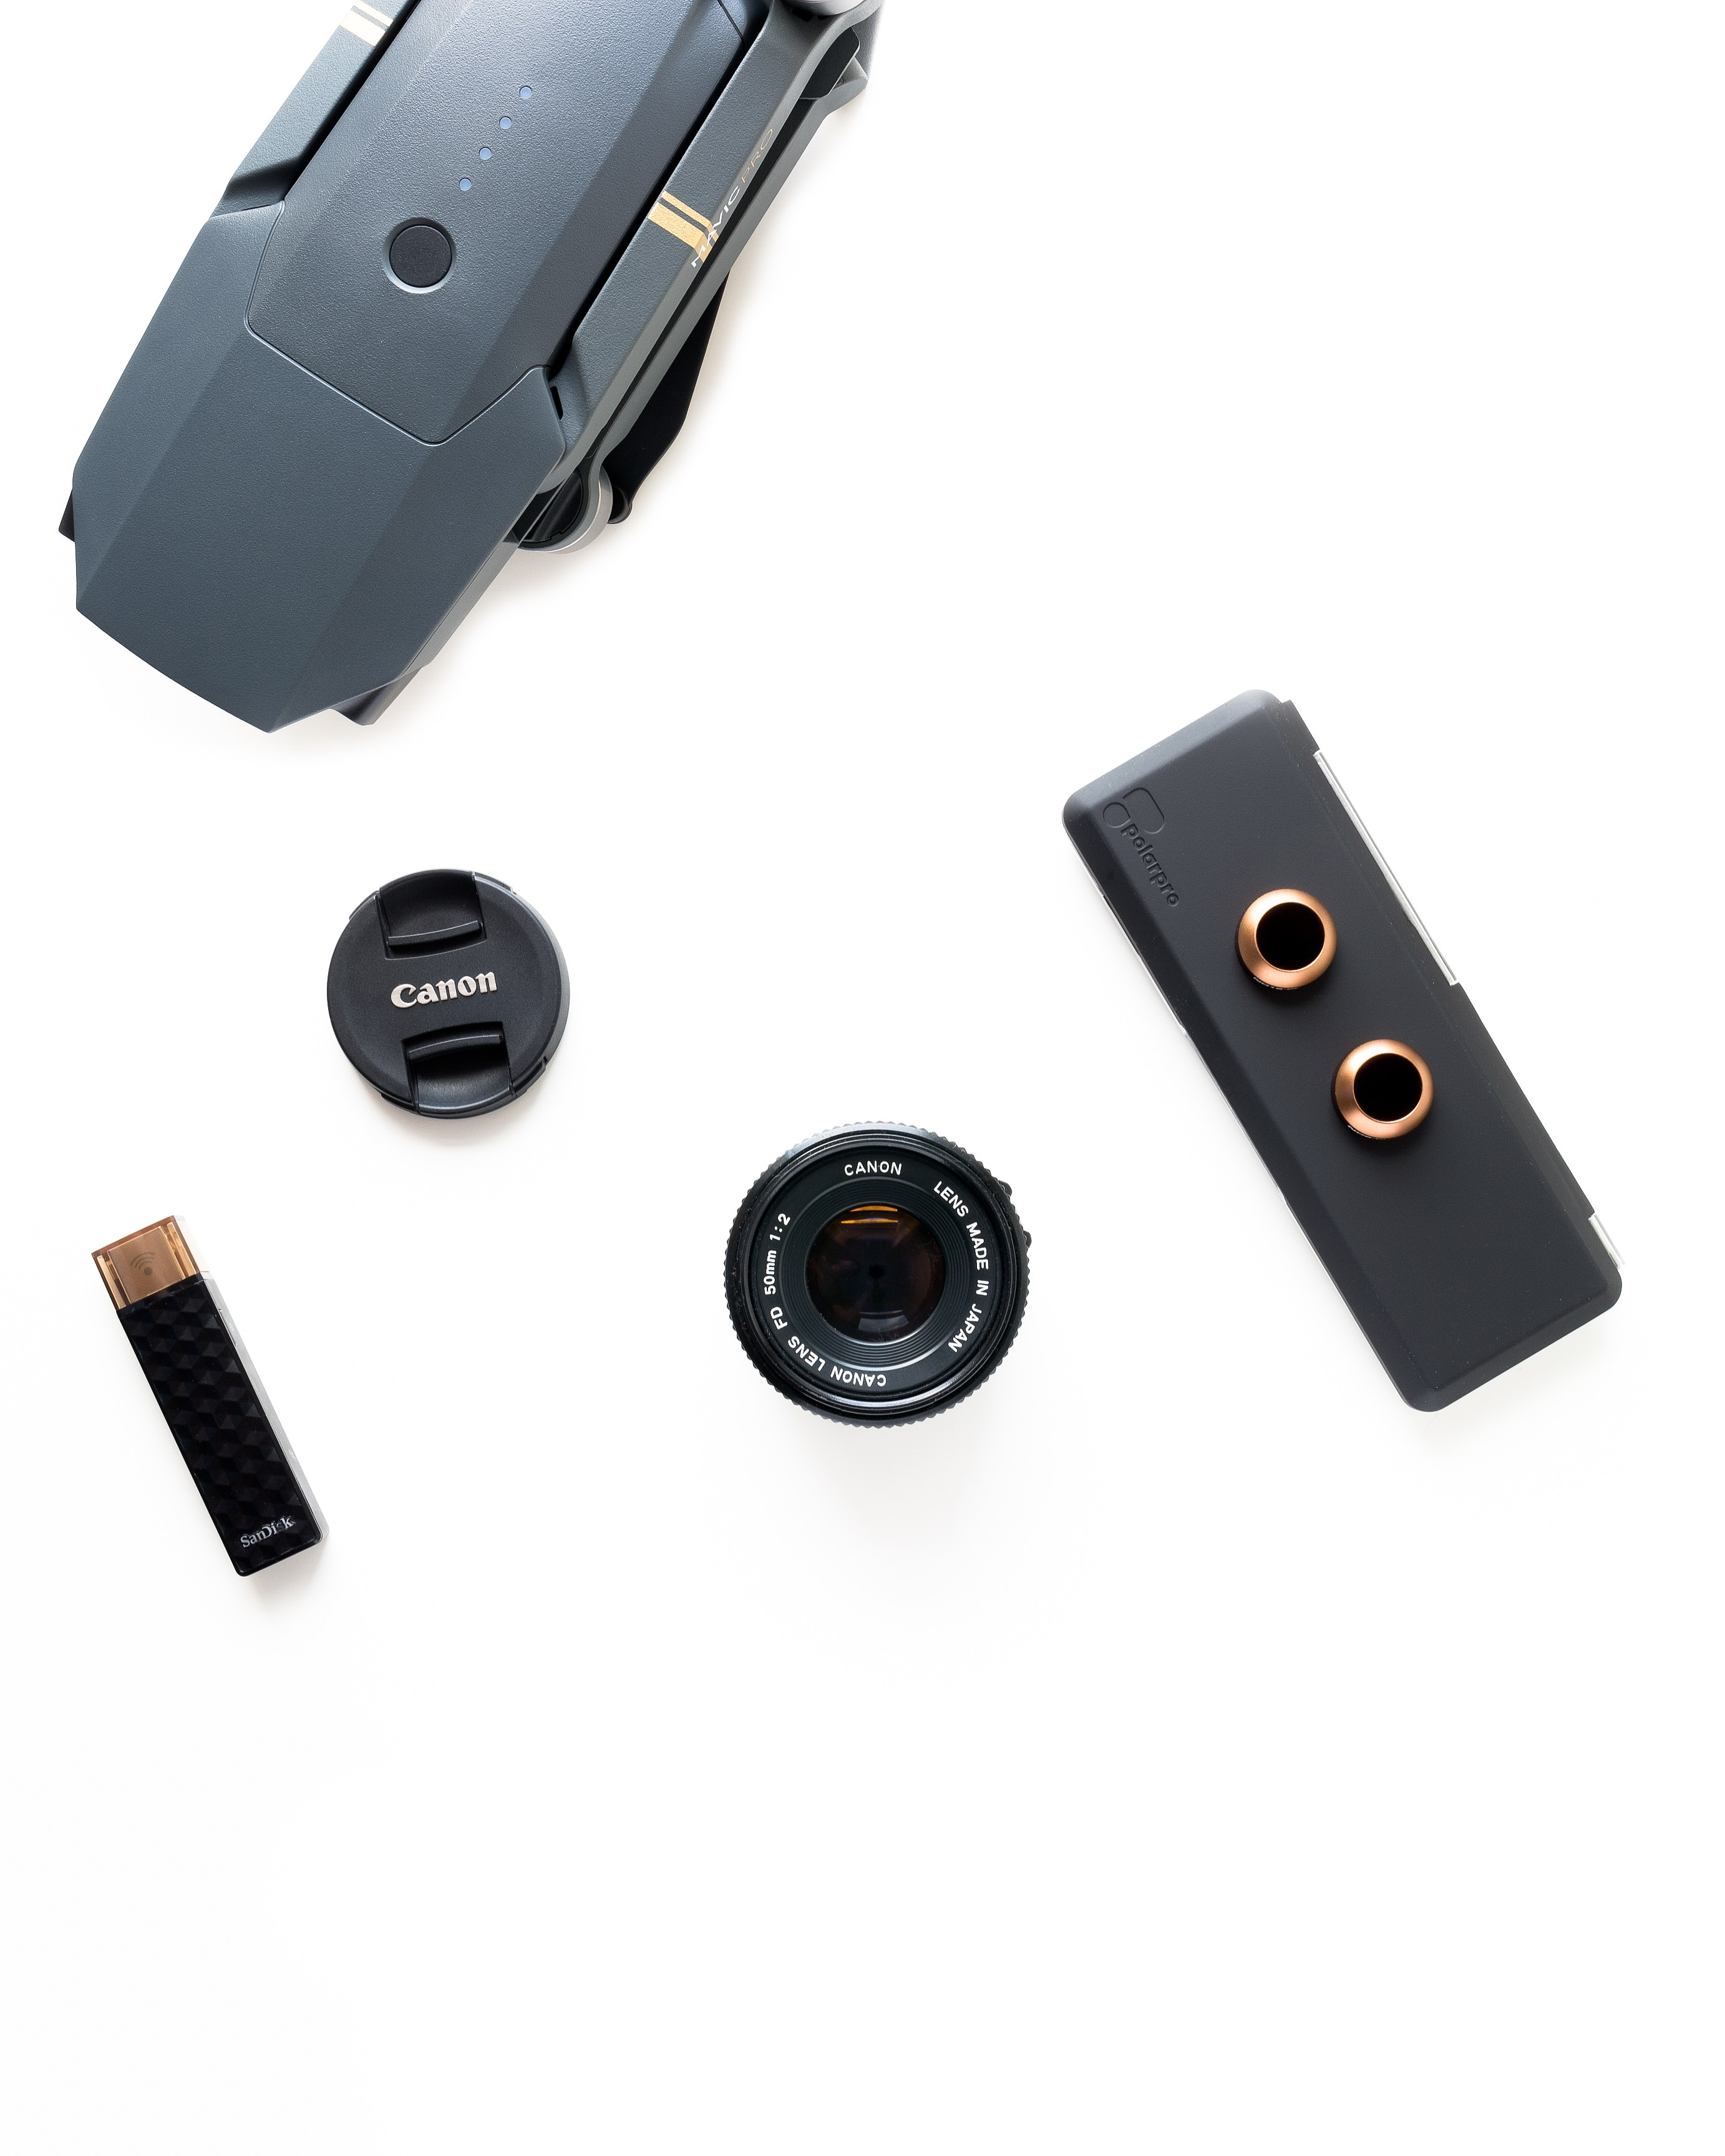 black Canon zoom lens on white surface near gray quadcopter drone